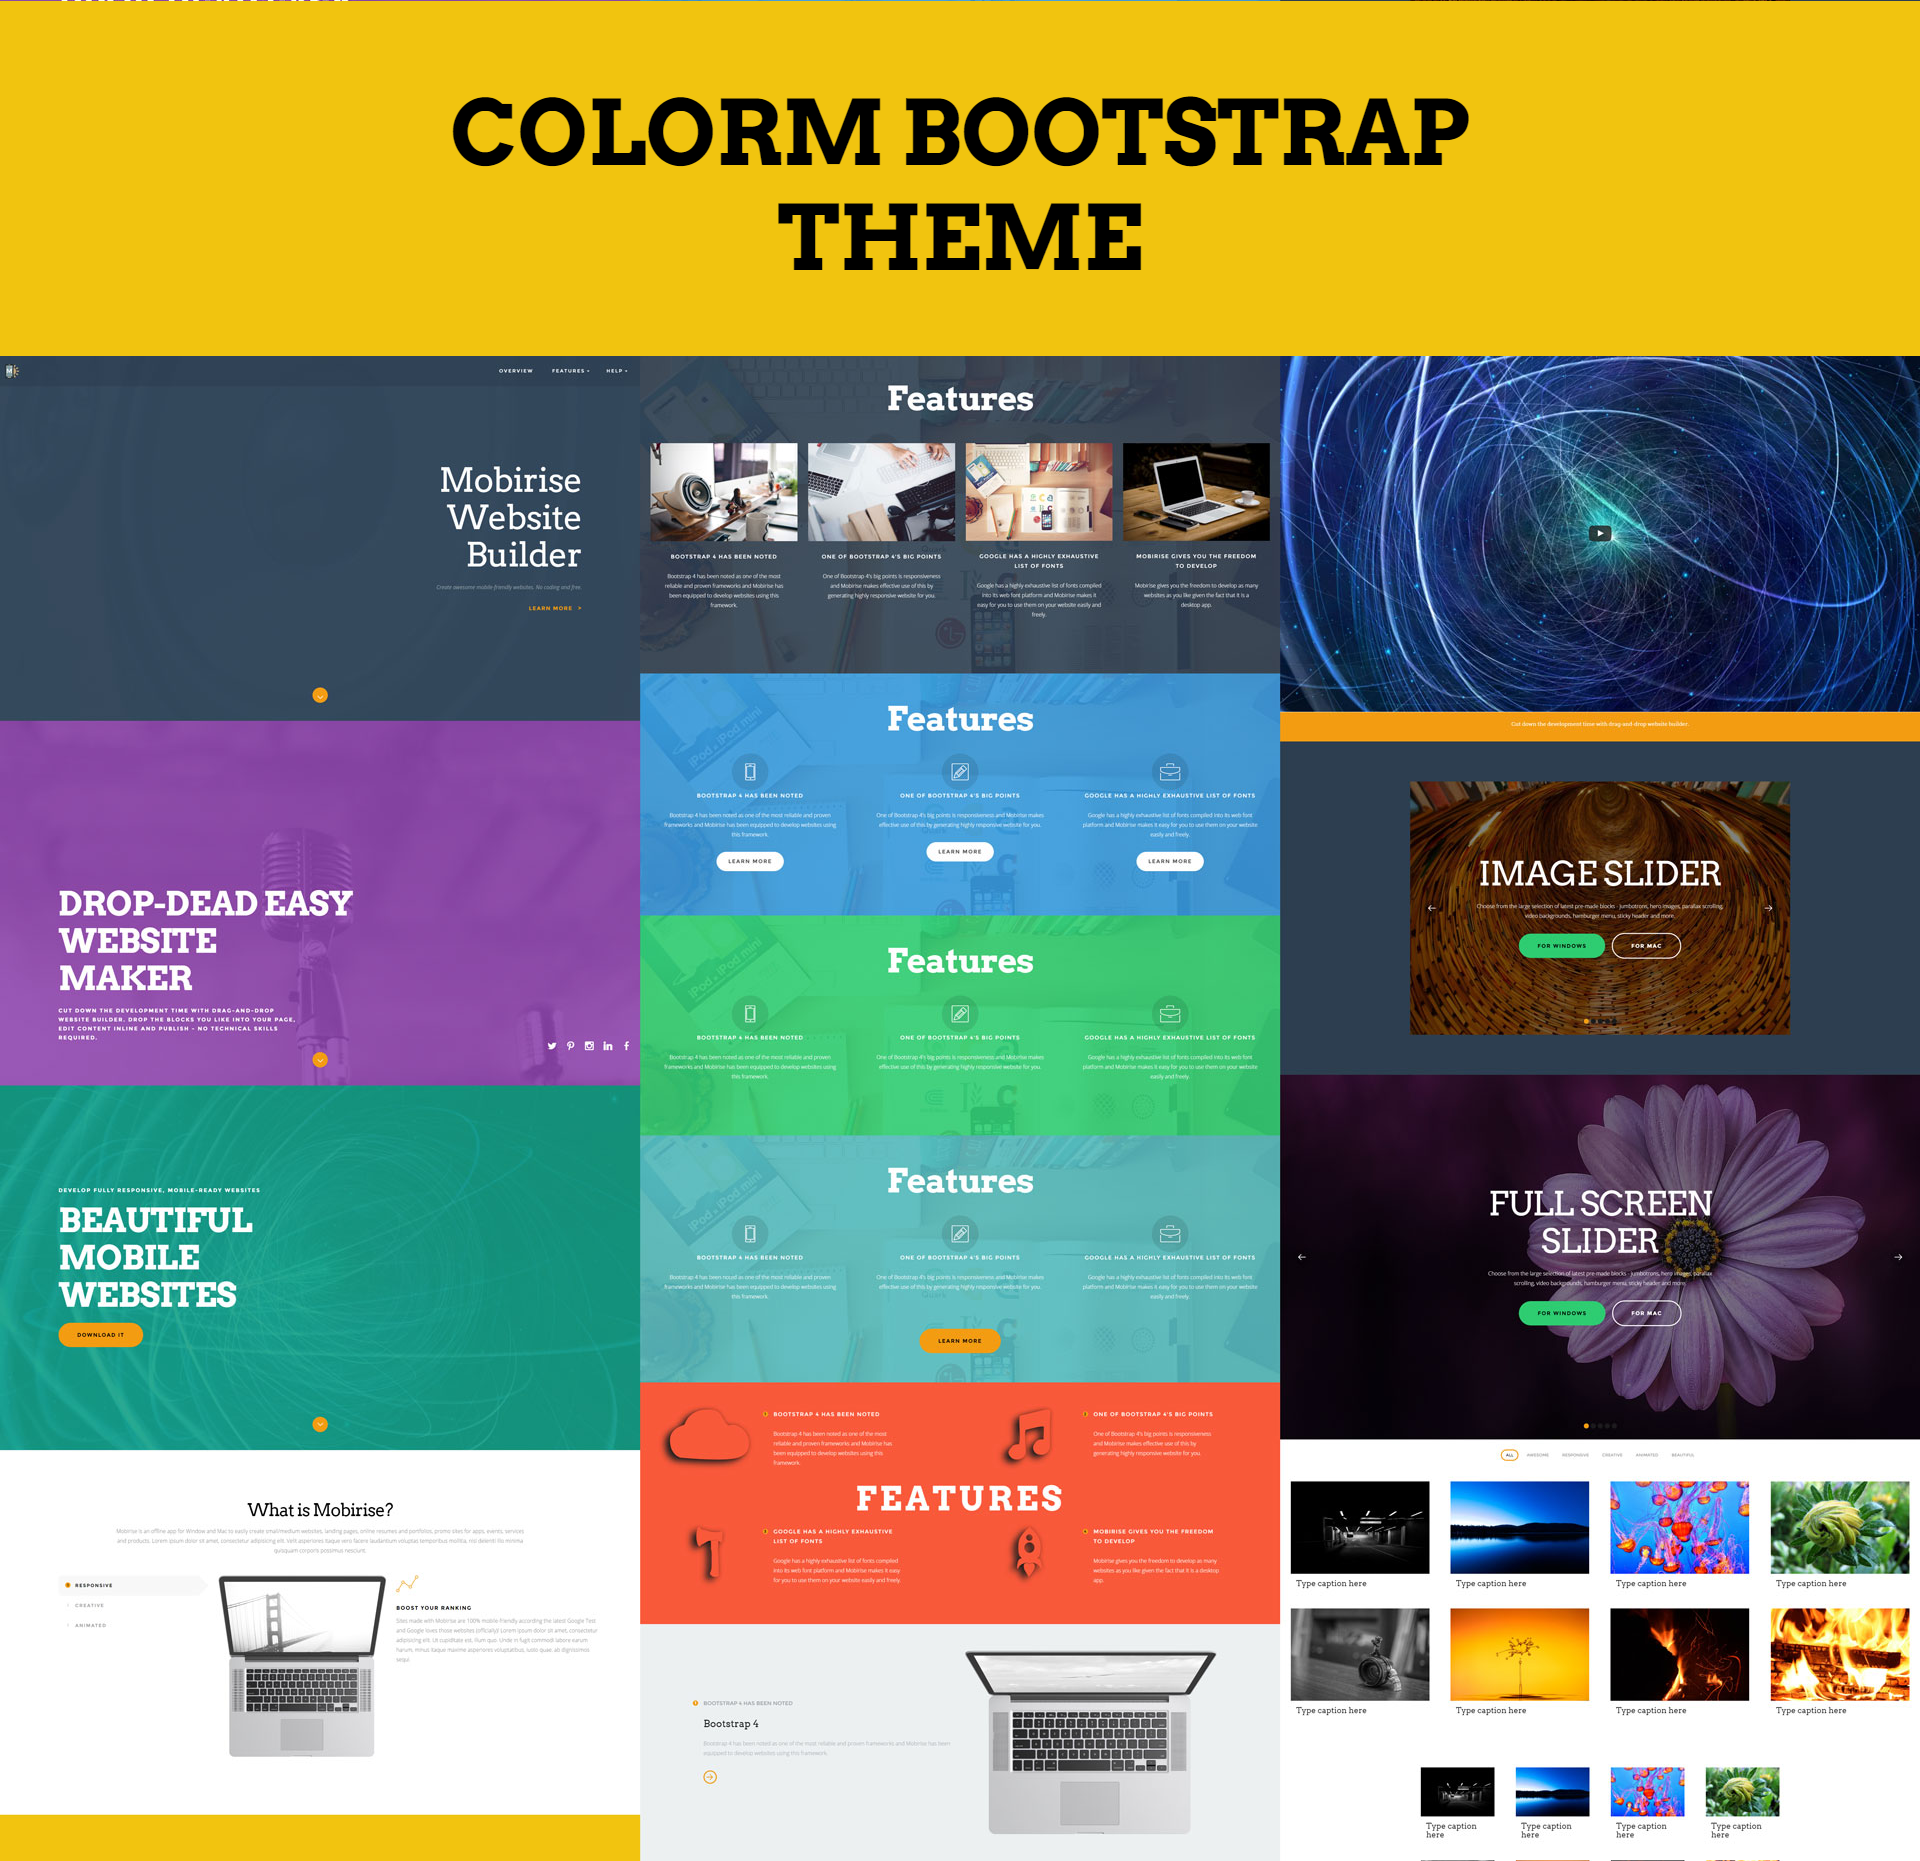 Free Download Bootstrap ColorM Templates